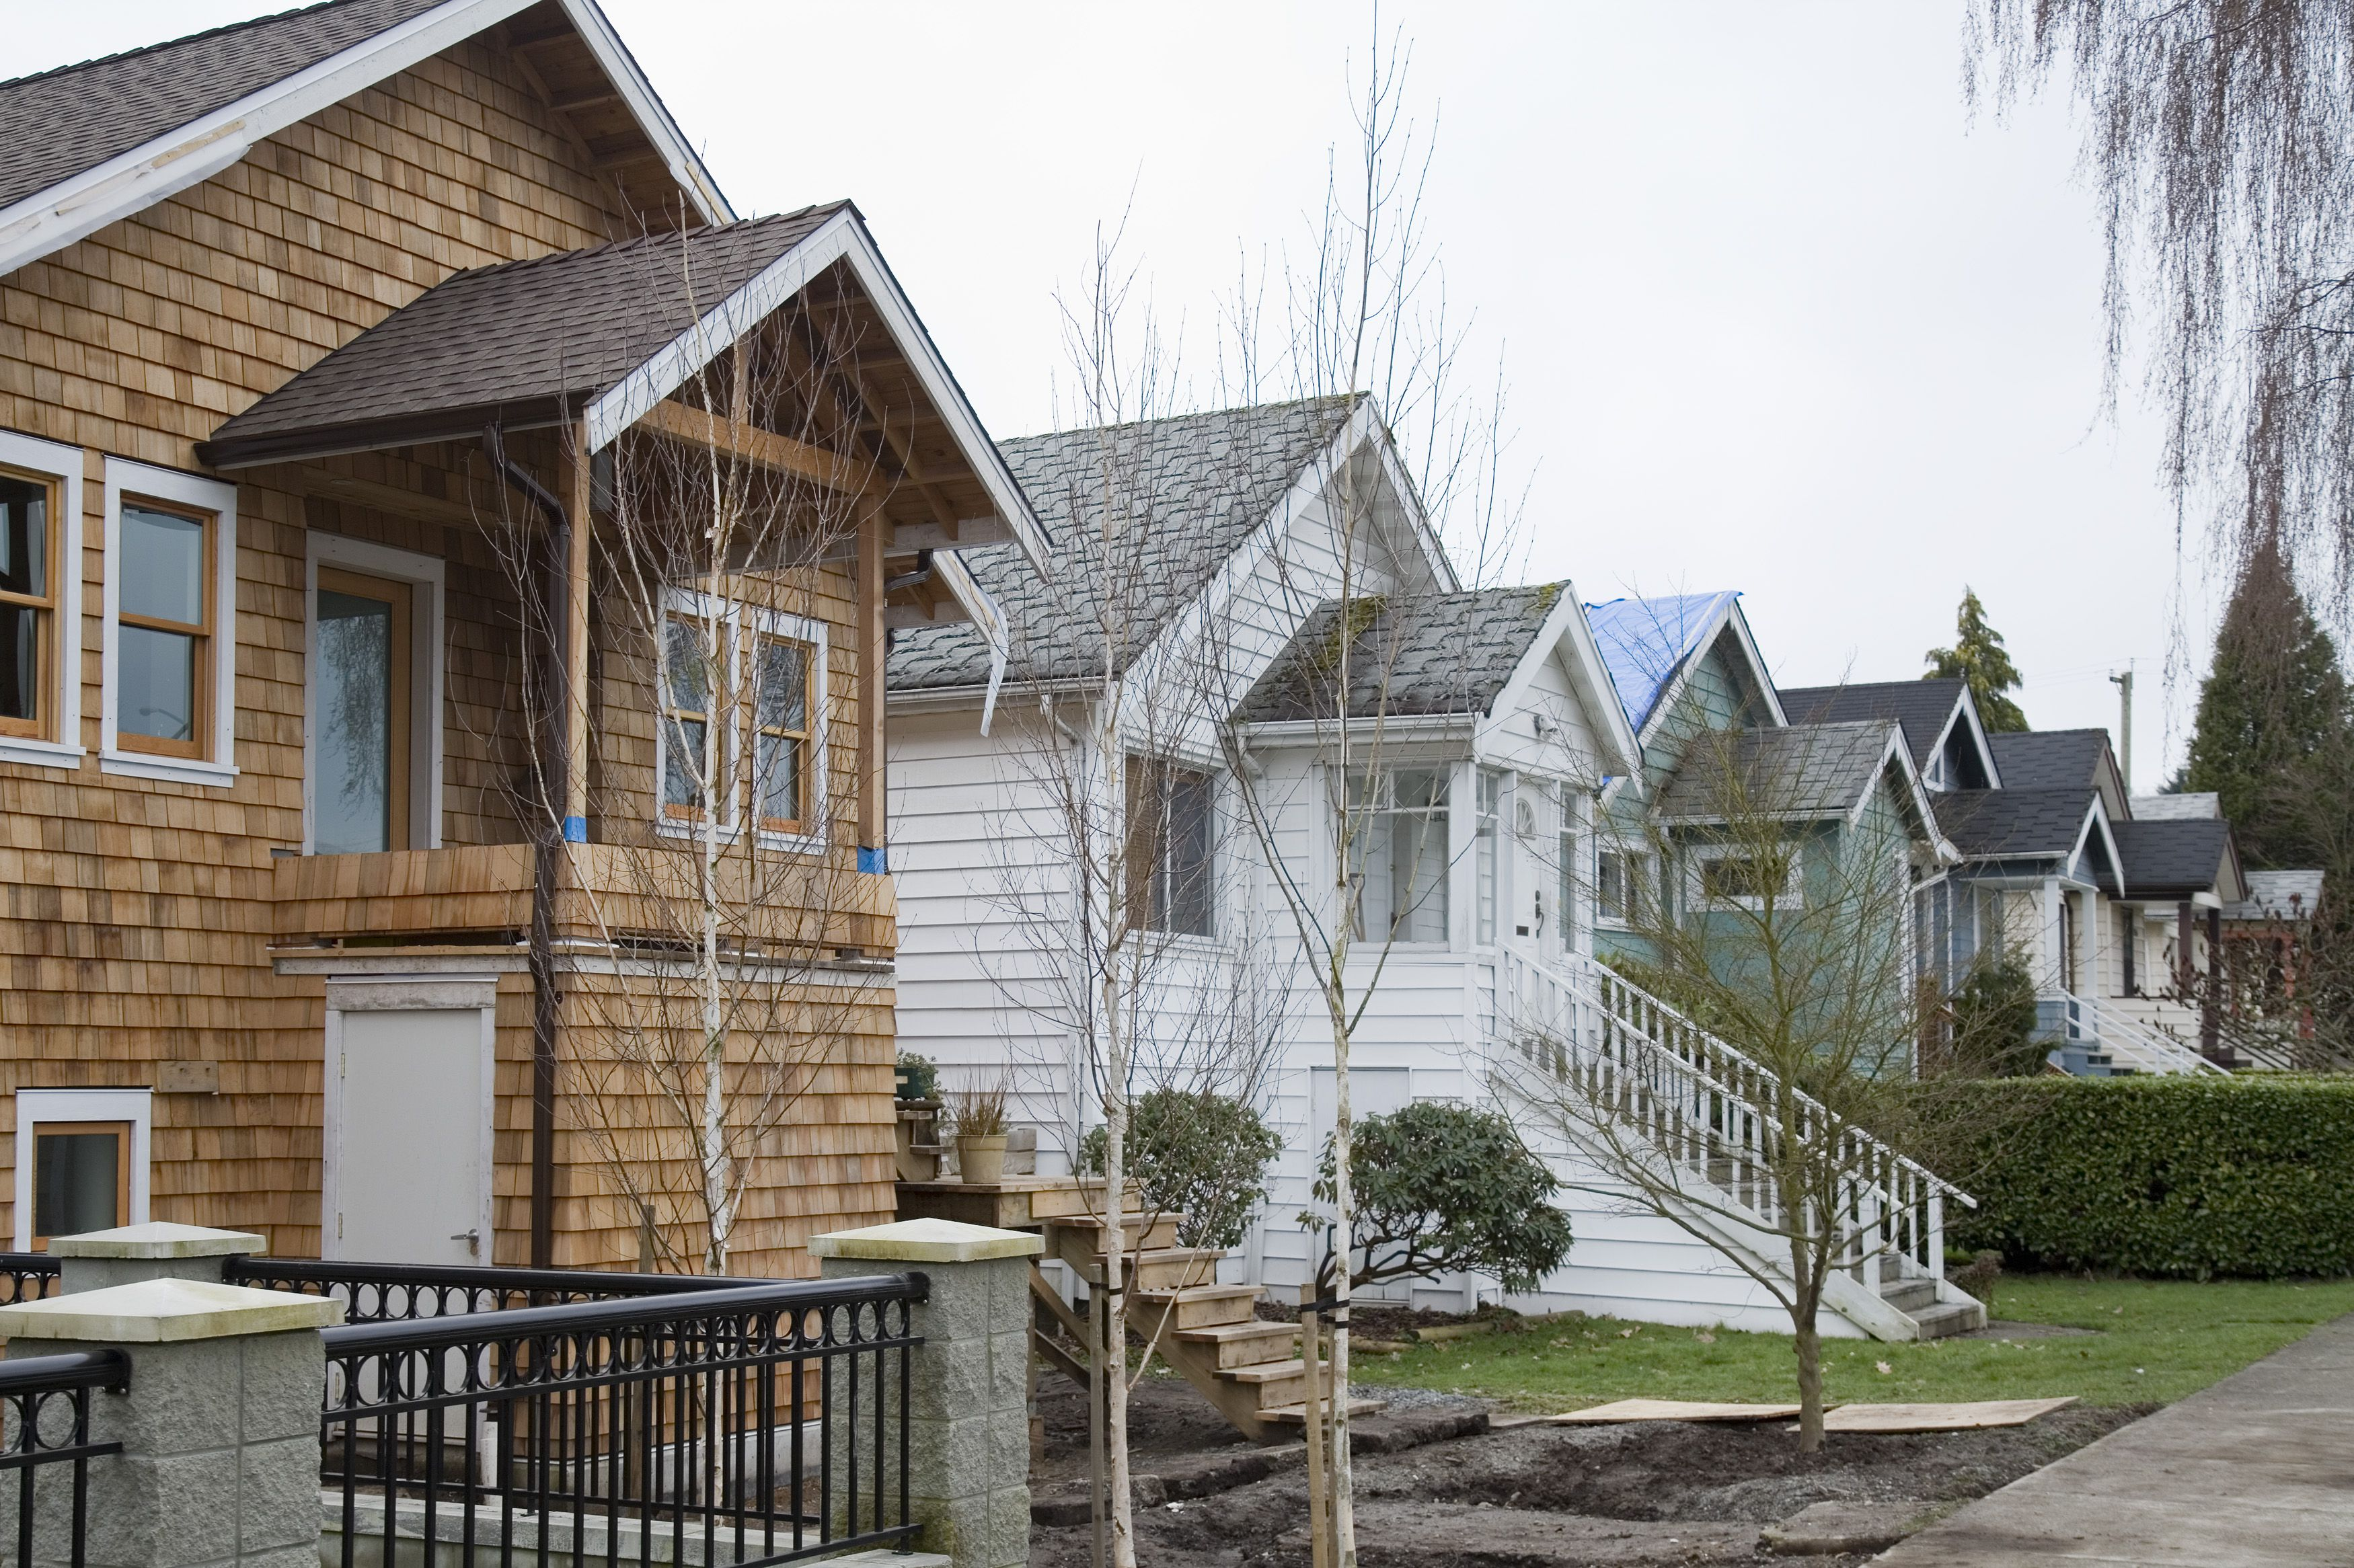 Average price of detached houses sold in Vancouver plunges 33 per cent, new data show